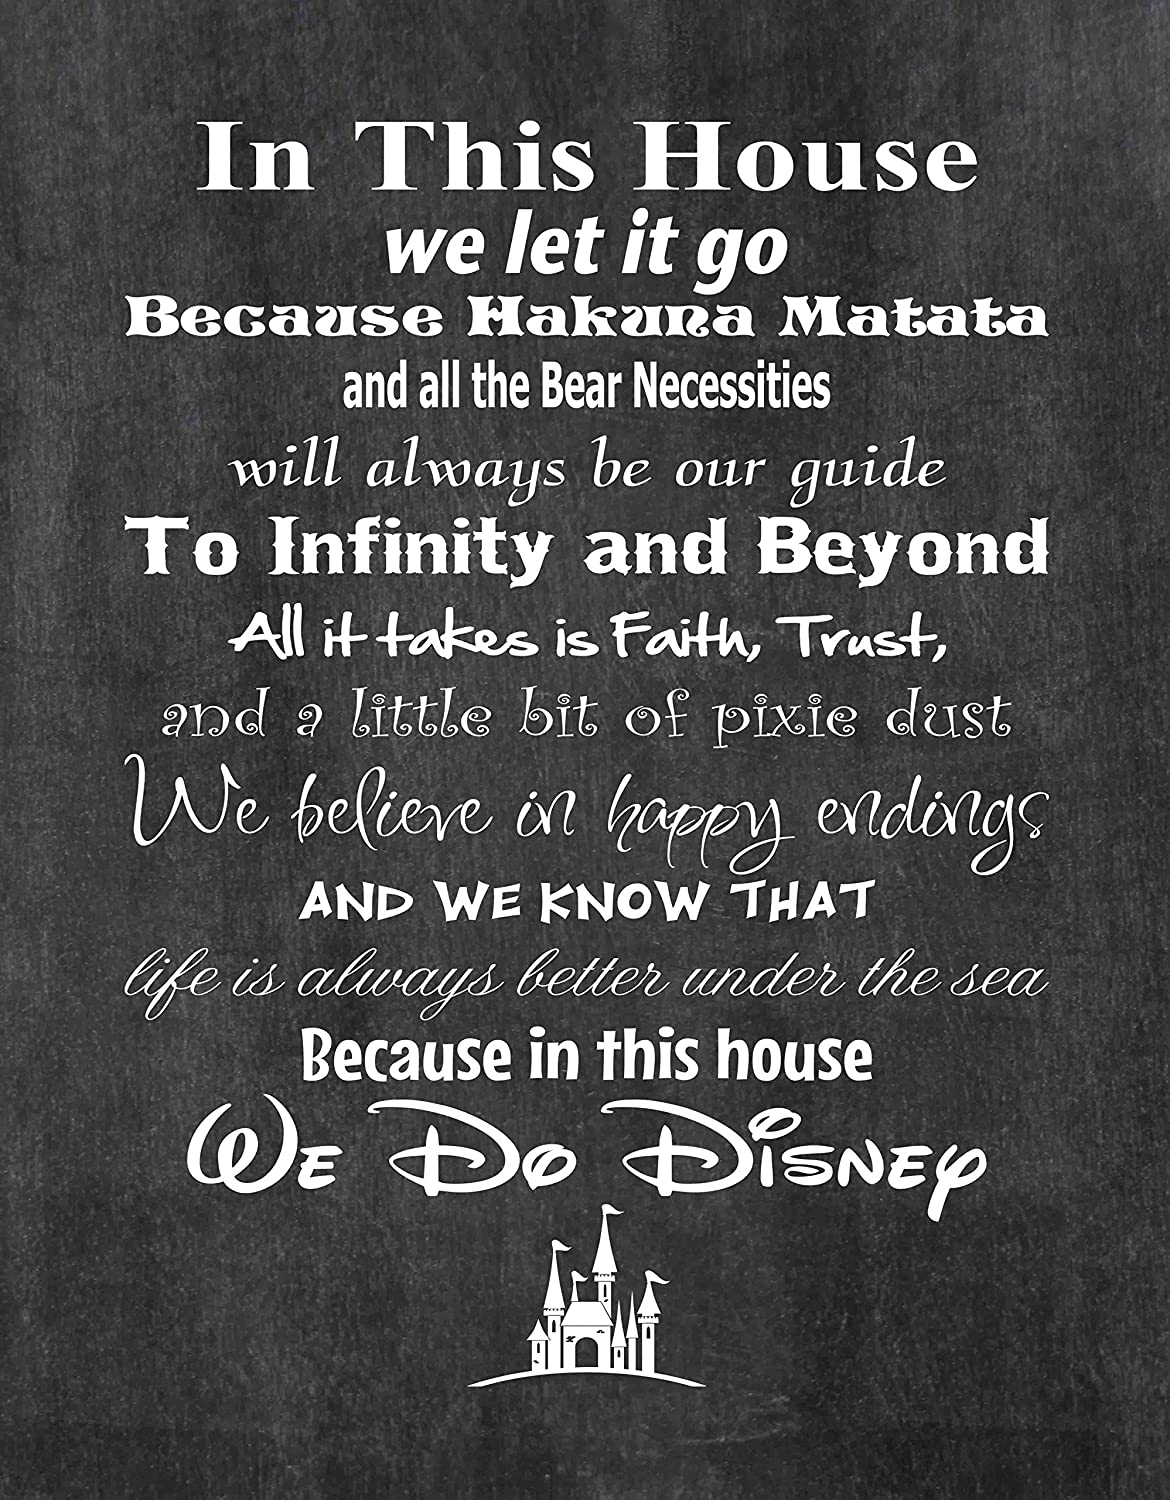 In This House We Do Disney - Poster Print Photo Quality - Made in USA - Disney Family House Rules - Ready to Frame - Frame not included (8x10, Chalkboard Background)